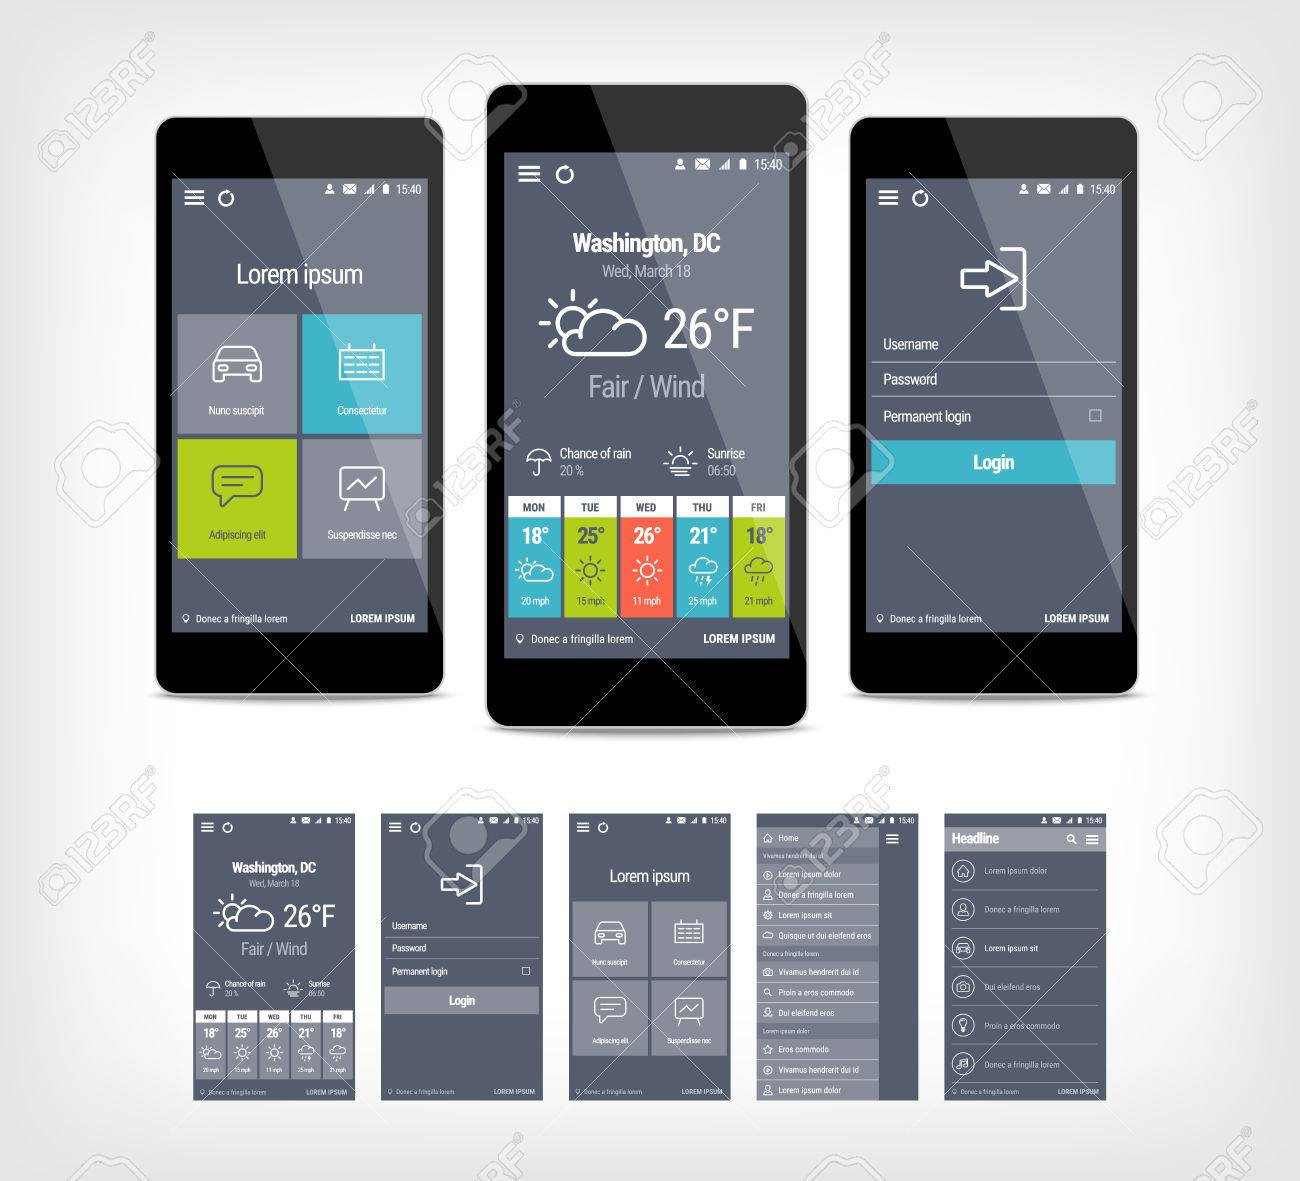 Mobile App Ui Set Of Modern Design Template For User Interface - Mobile app design templates